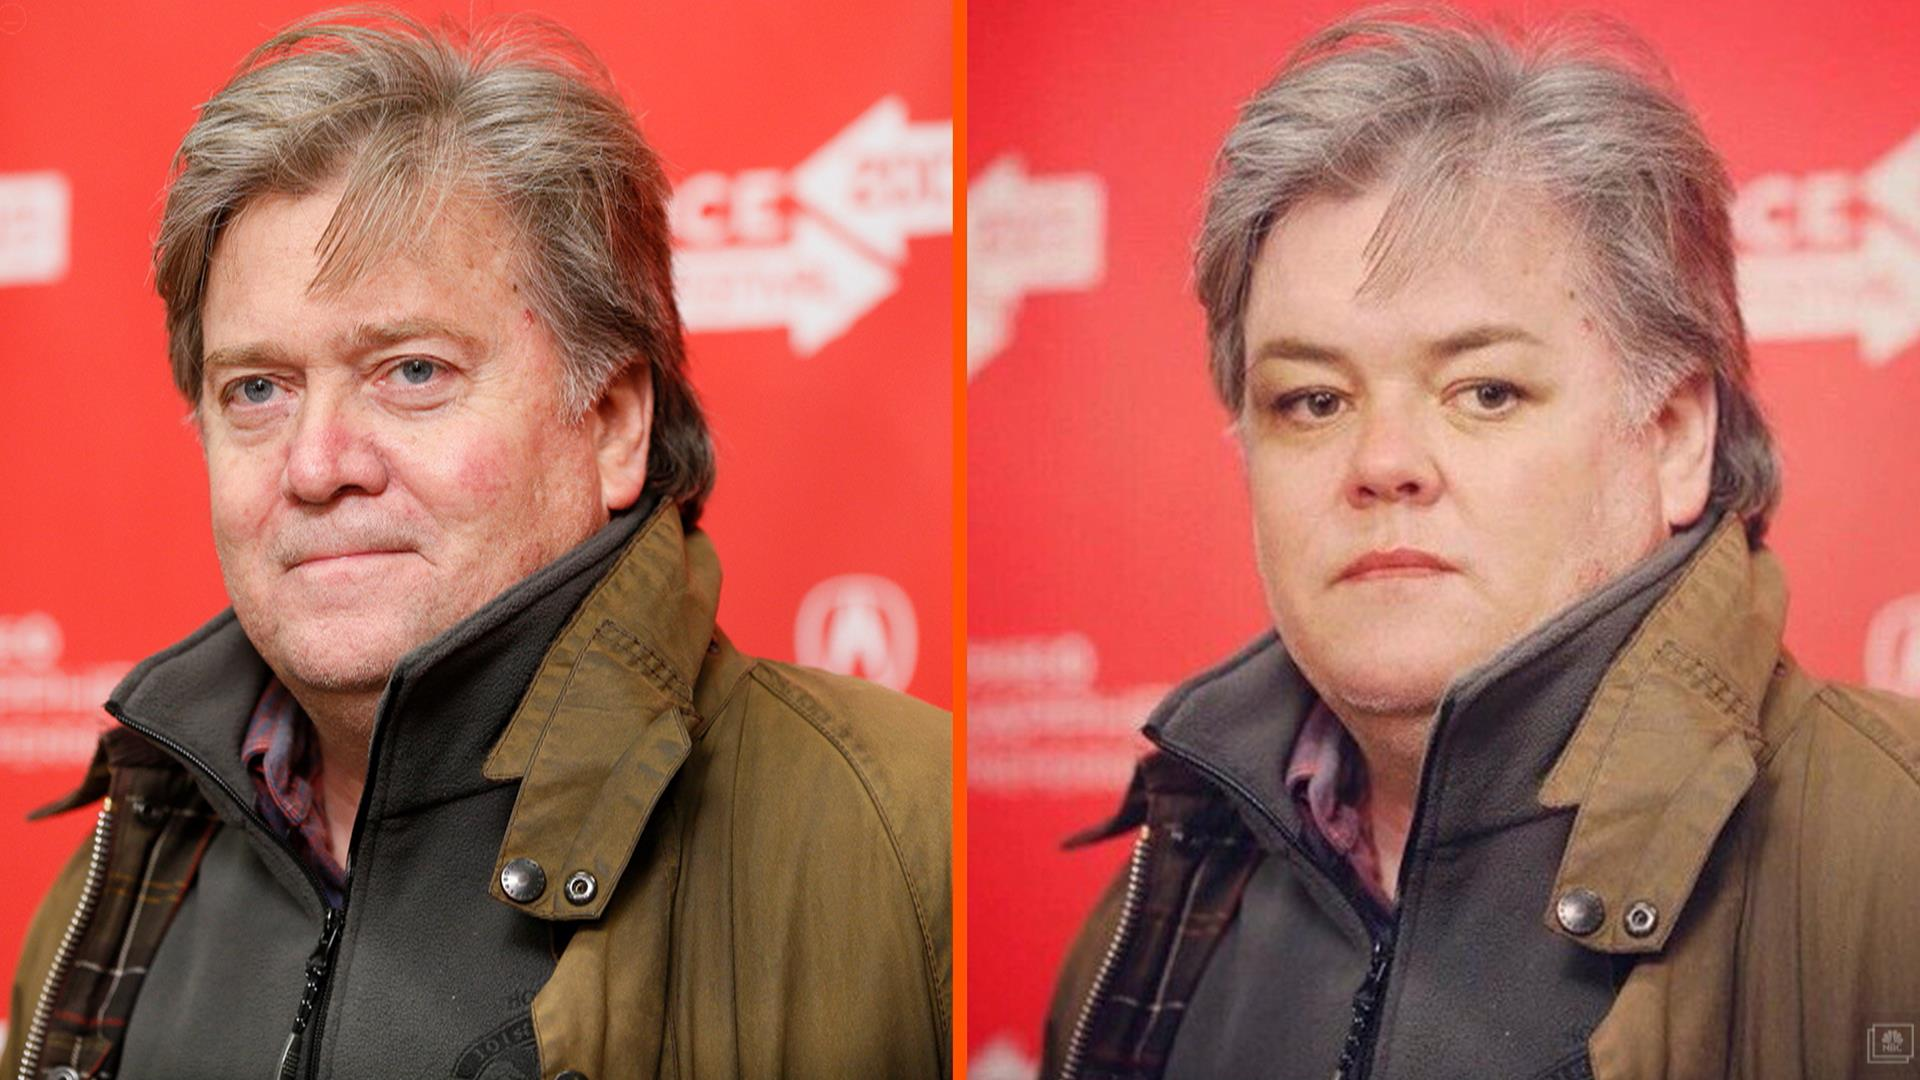 Alec Baldwin To Host Snl But Will Rosie O Donnell Play